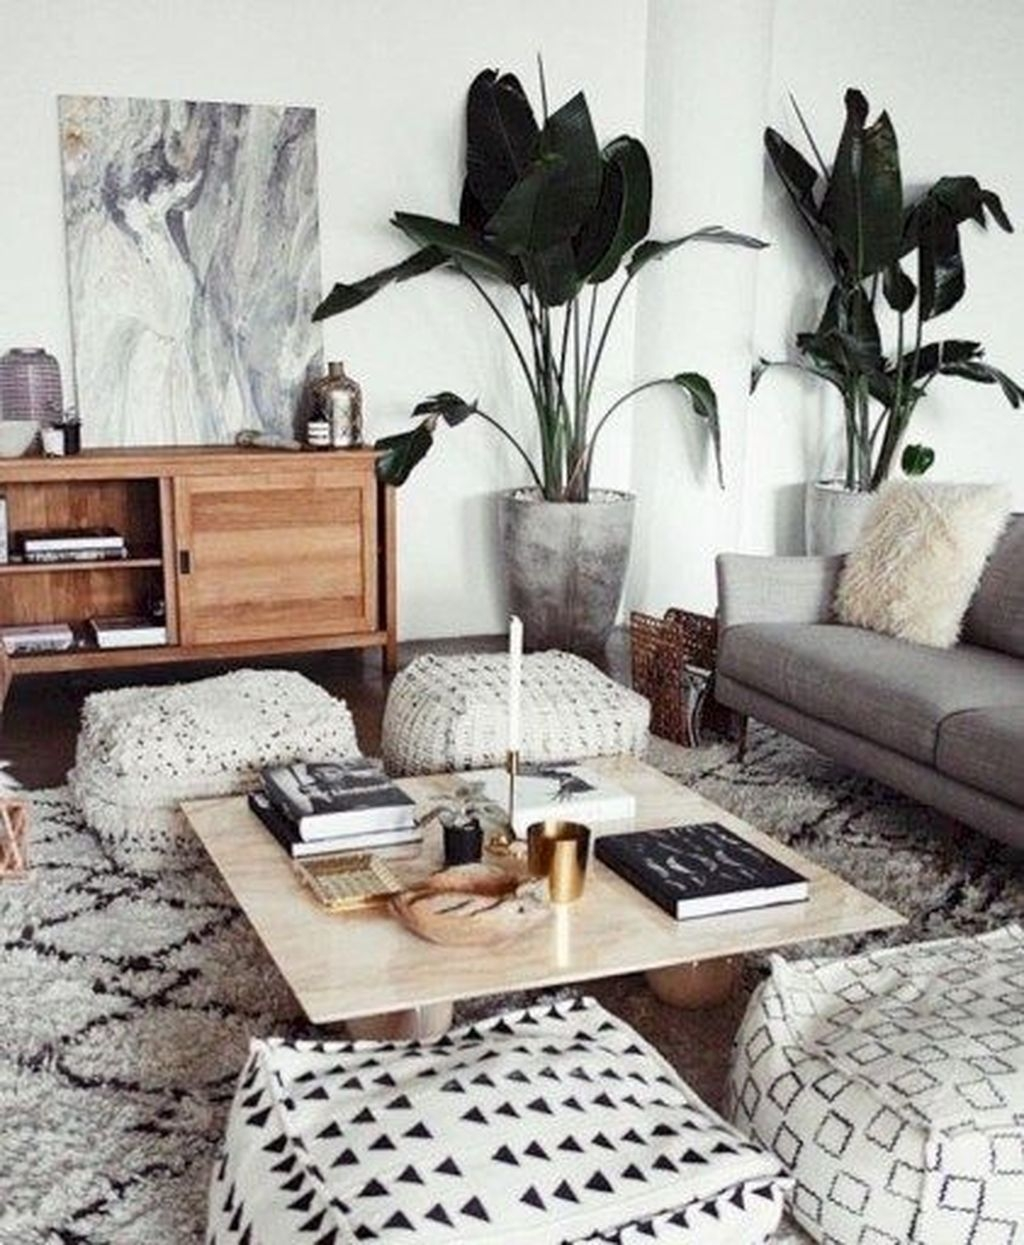 Stunning Apartment Decorating Ideas37